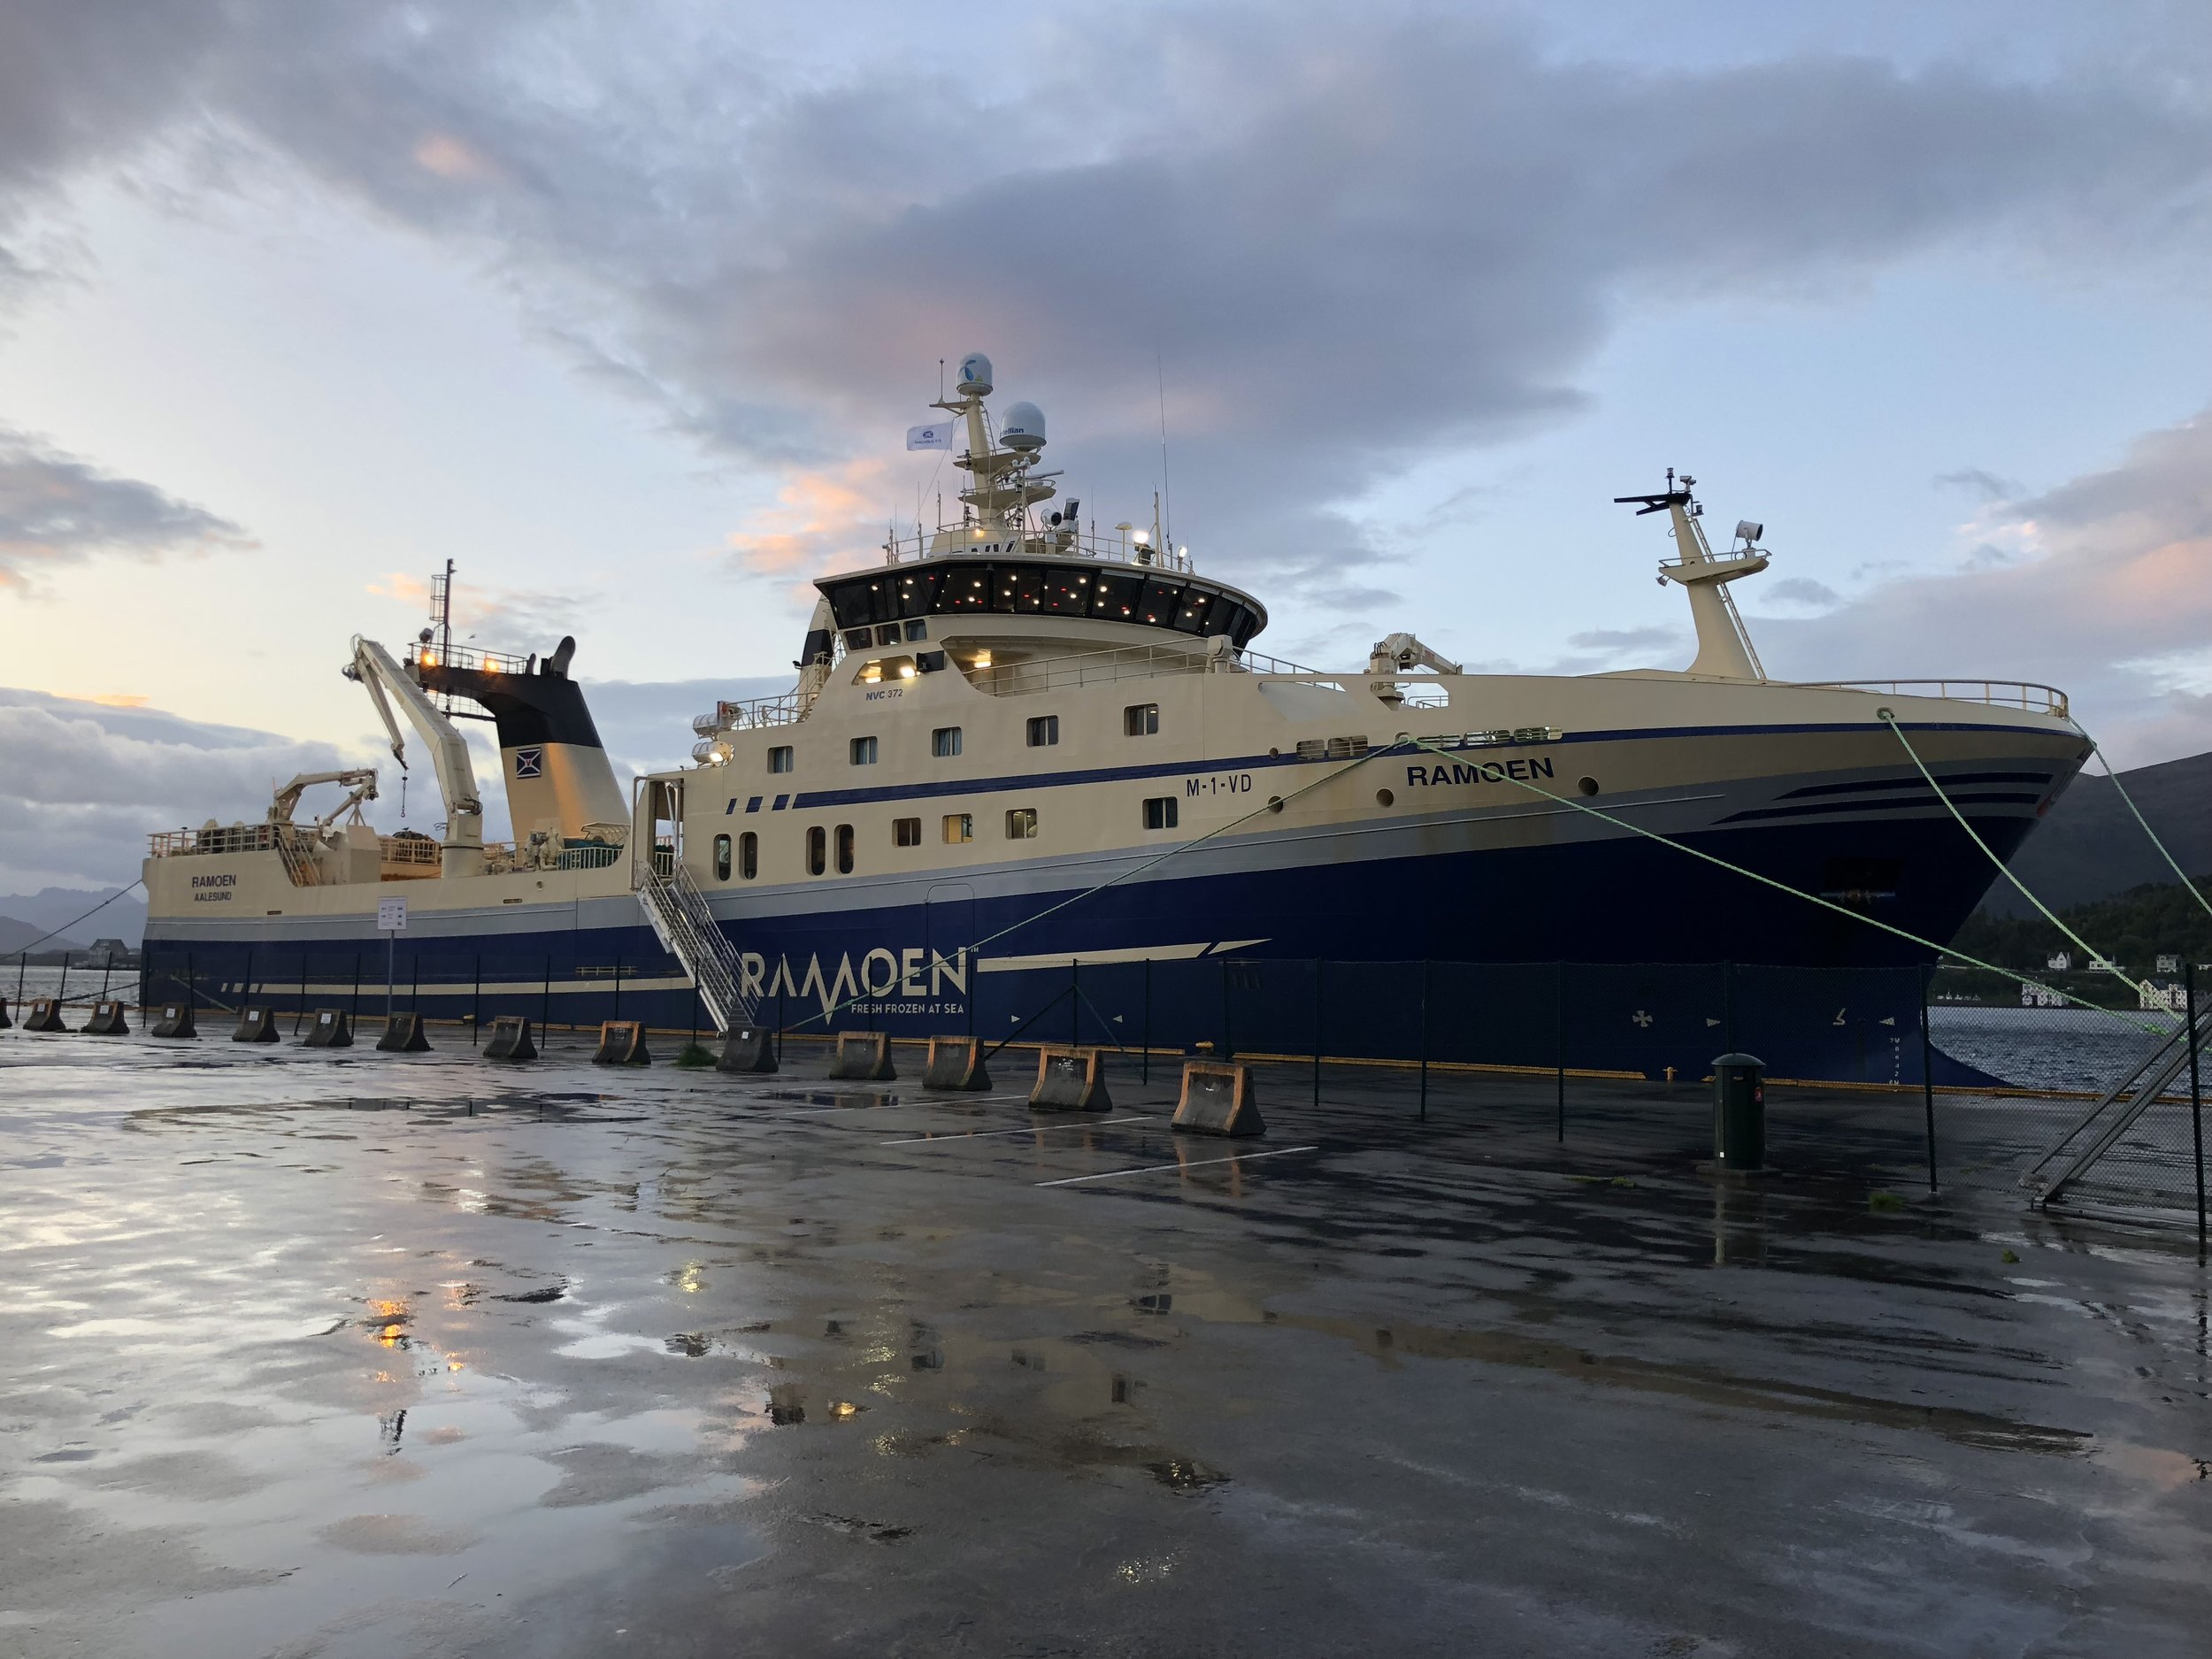 Ramoen is the size of a small cruise ship and goes to sea for up to 5 weeks at a time.